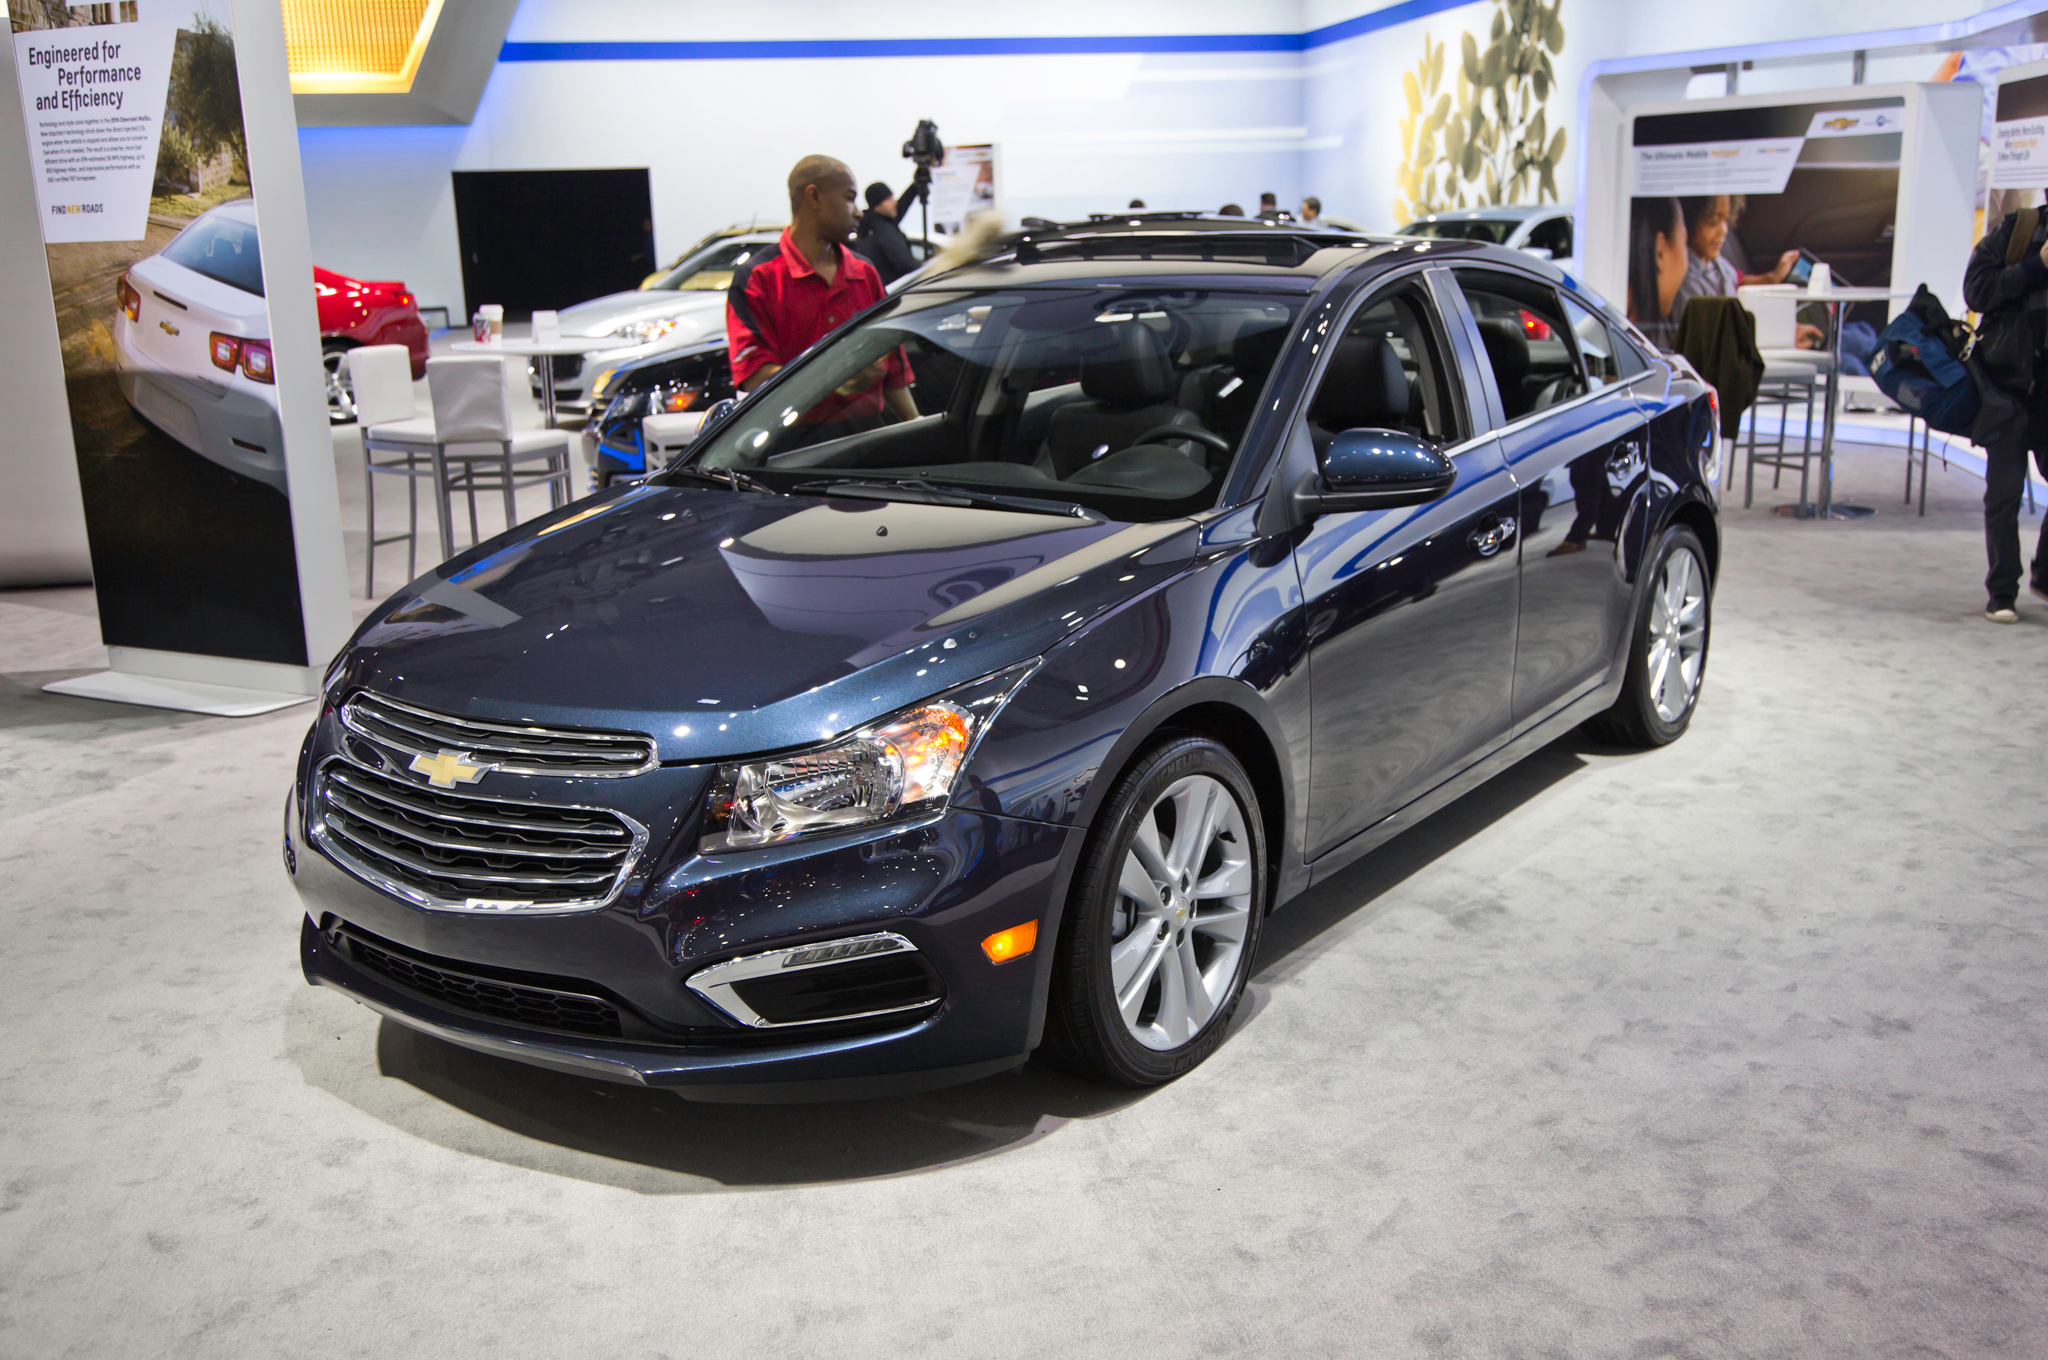 2015 chevrolet cruze avant – pictures, information and specs